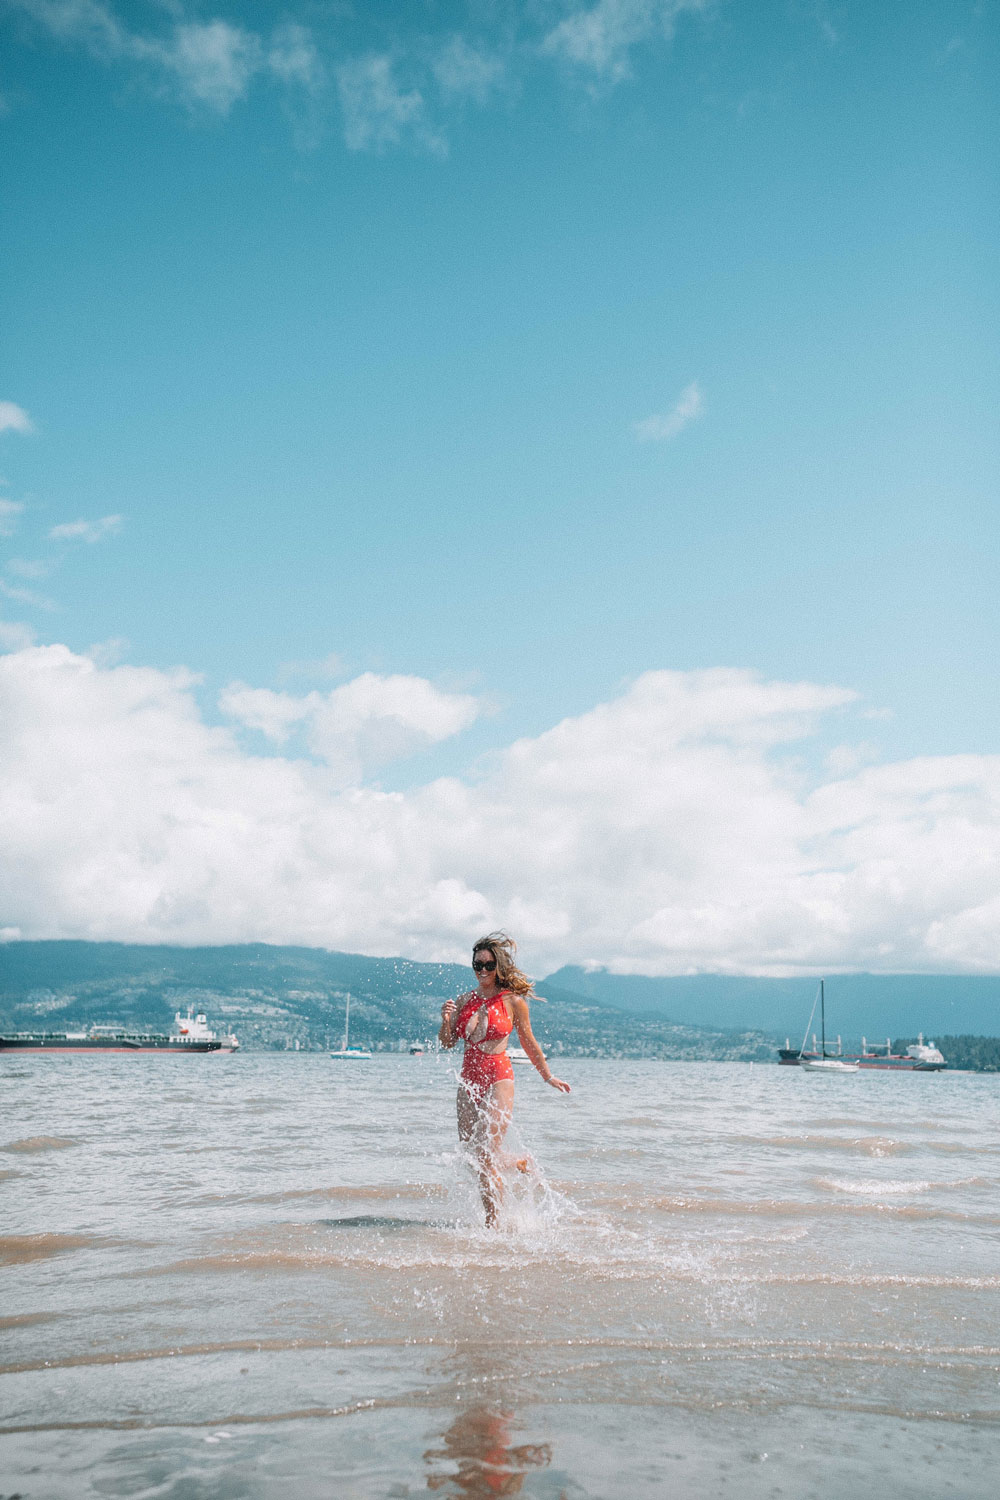 jericho beach vancouver by To Vogue or Bust